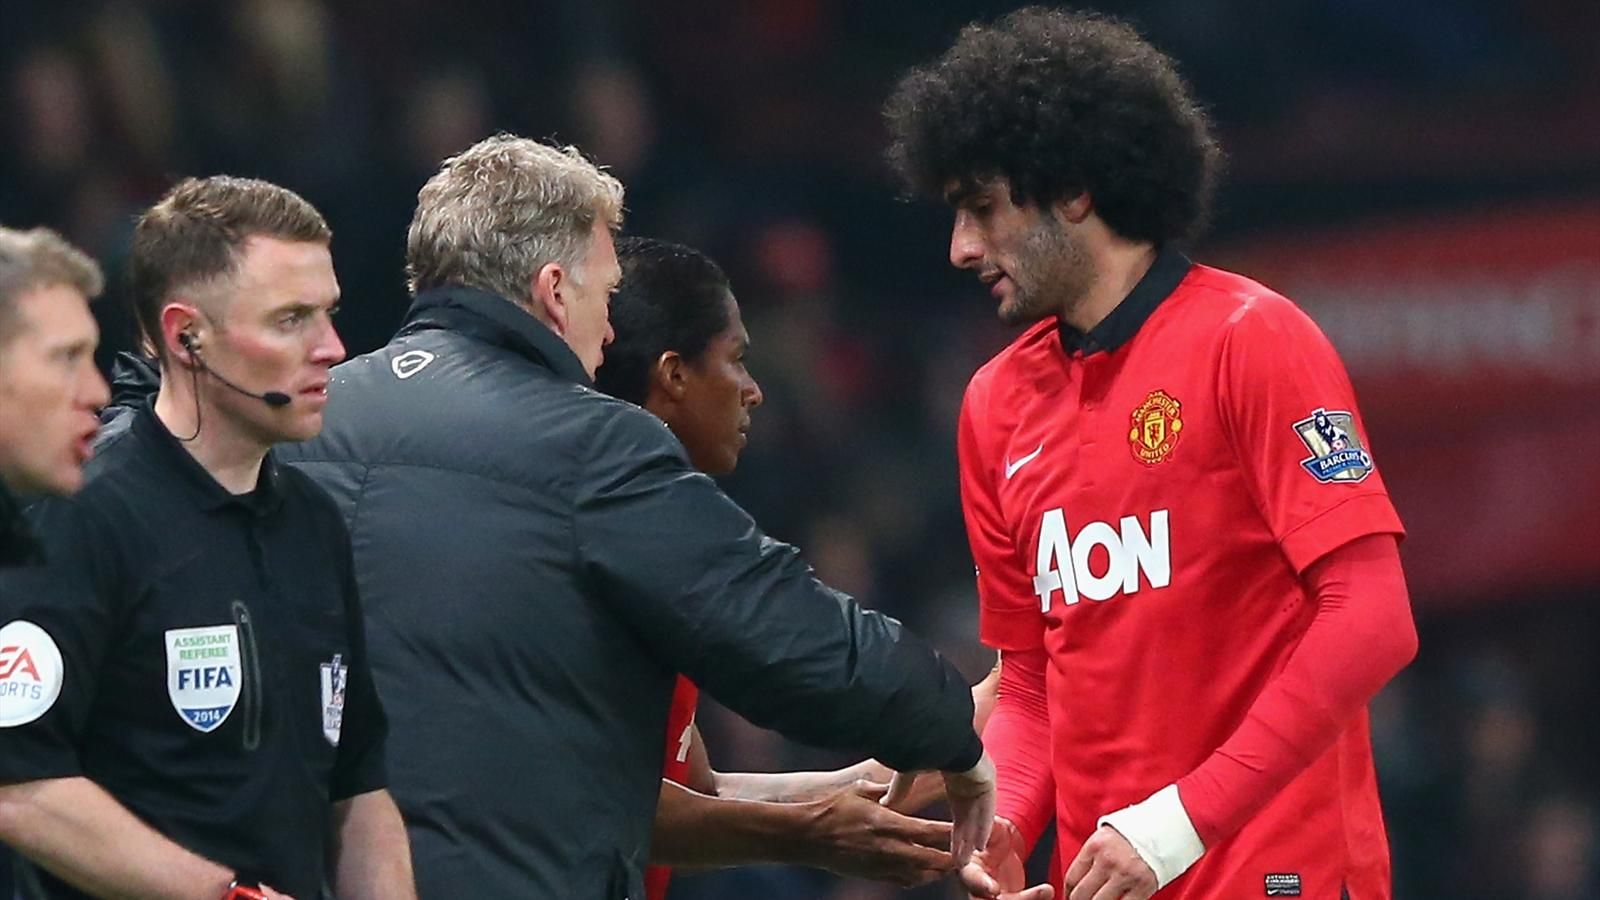 Marouane Fellaini of Manchester United is substituted by Manager David Moyes